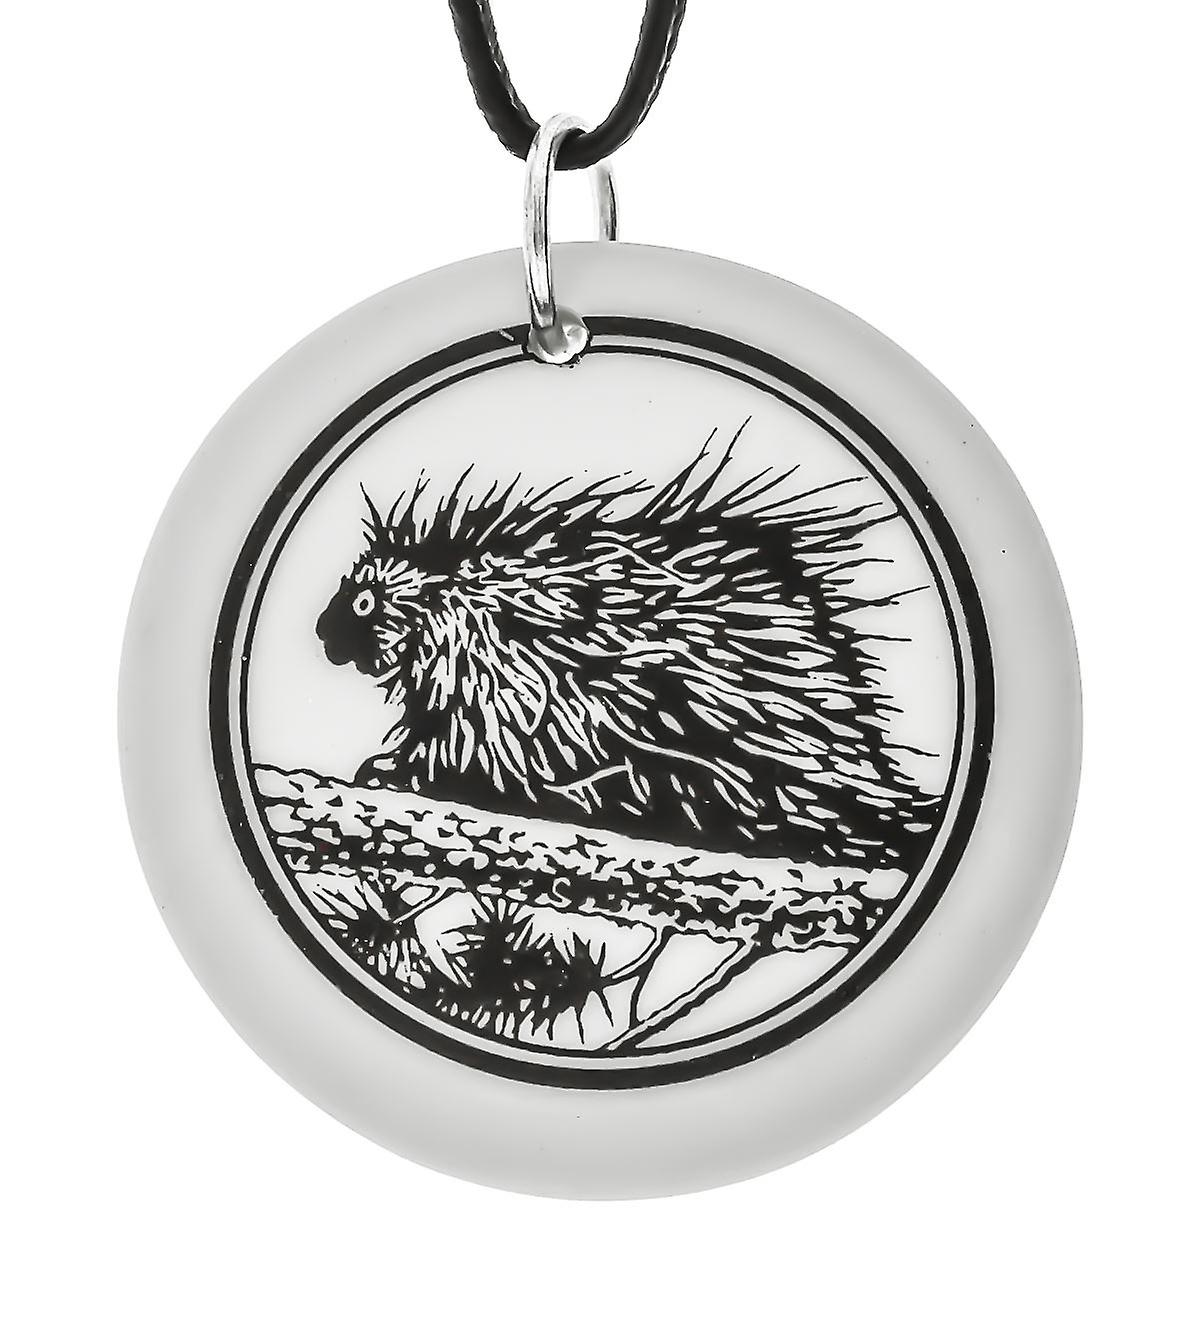 Handmade North American Porcupine Totem Round Shaped Porcelain Pendant